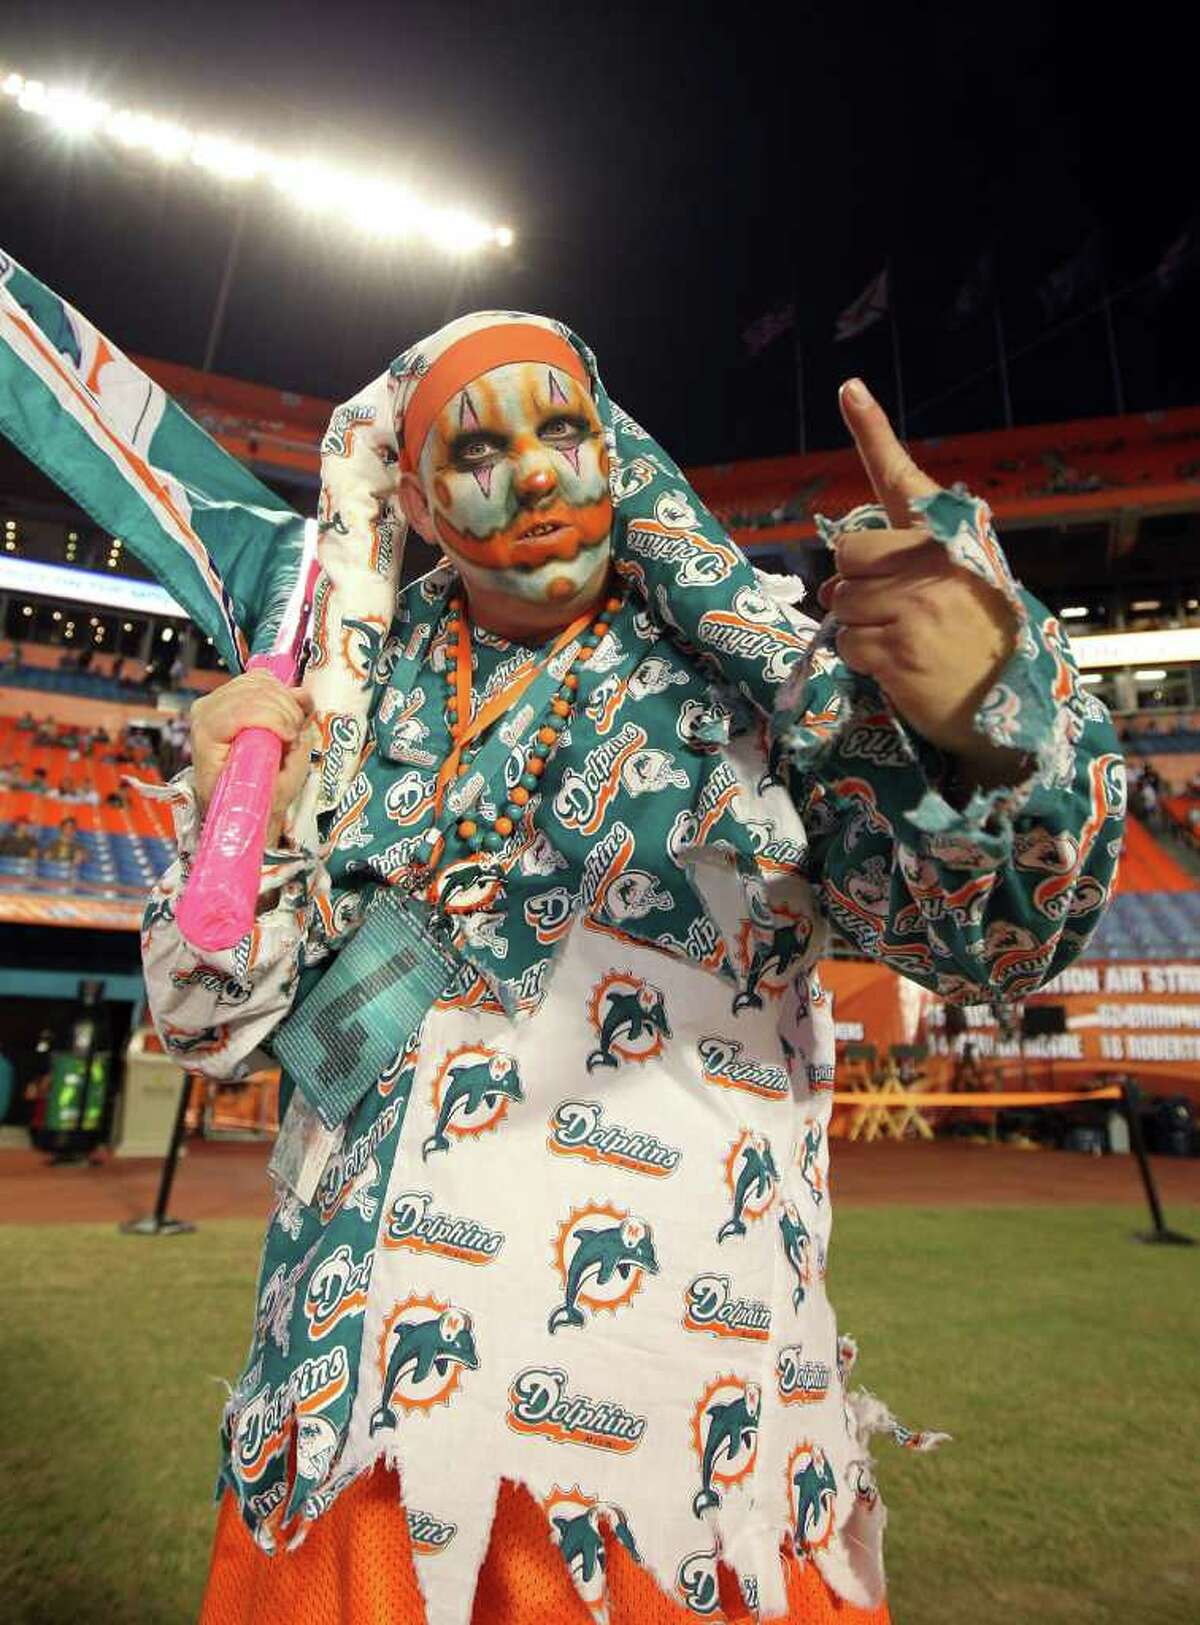 MIAMI - OCTOBER 4: A fan of the Miami Dolphins gets set for the game against the New England Patriots at Sun Life Field on October 4, 2010 in Miami, Florida. (Photo by Scott Cunningham/Getty Images)